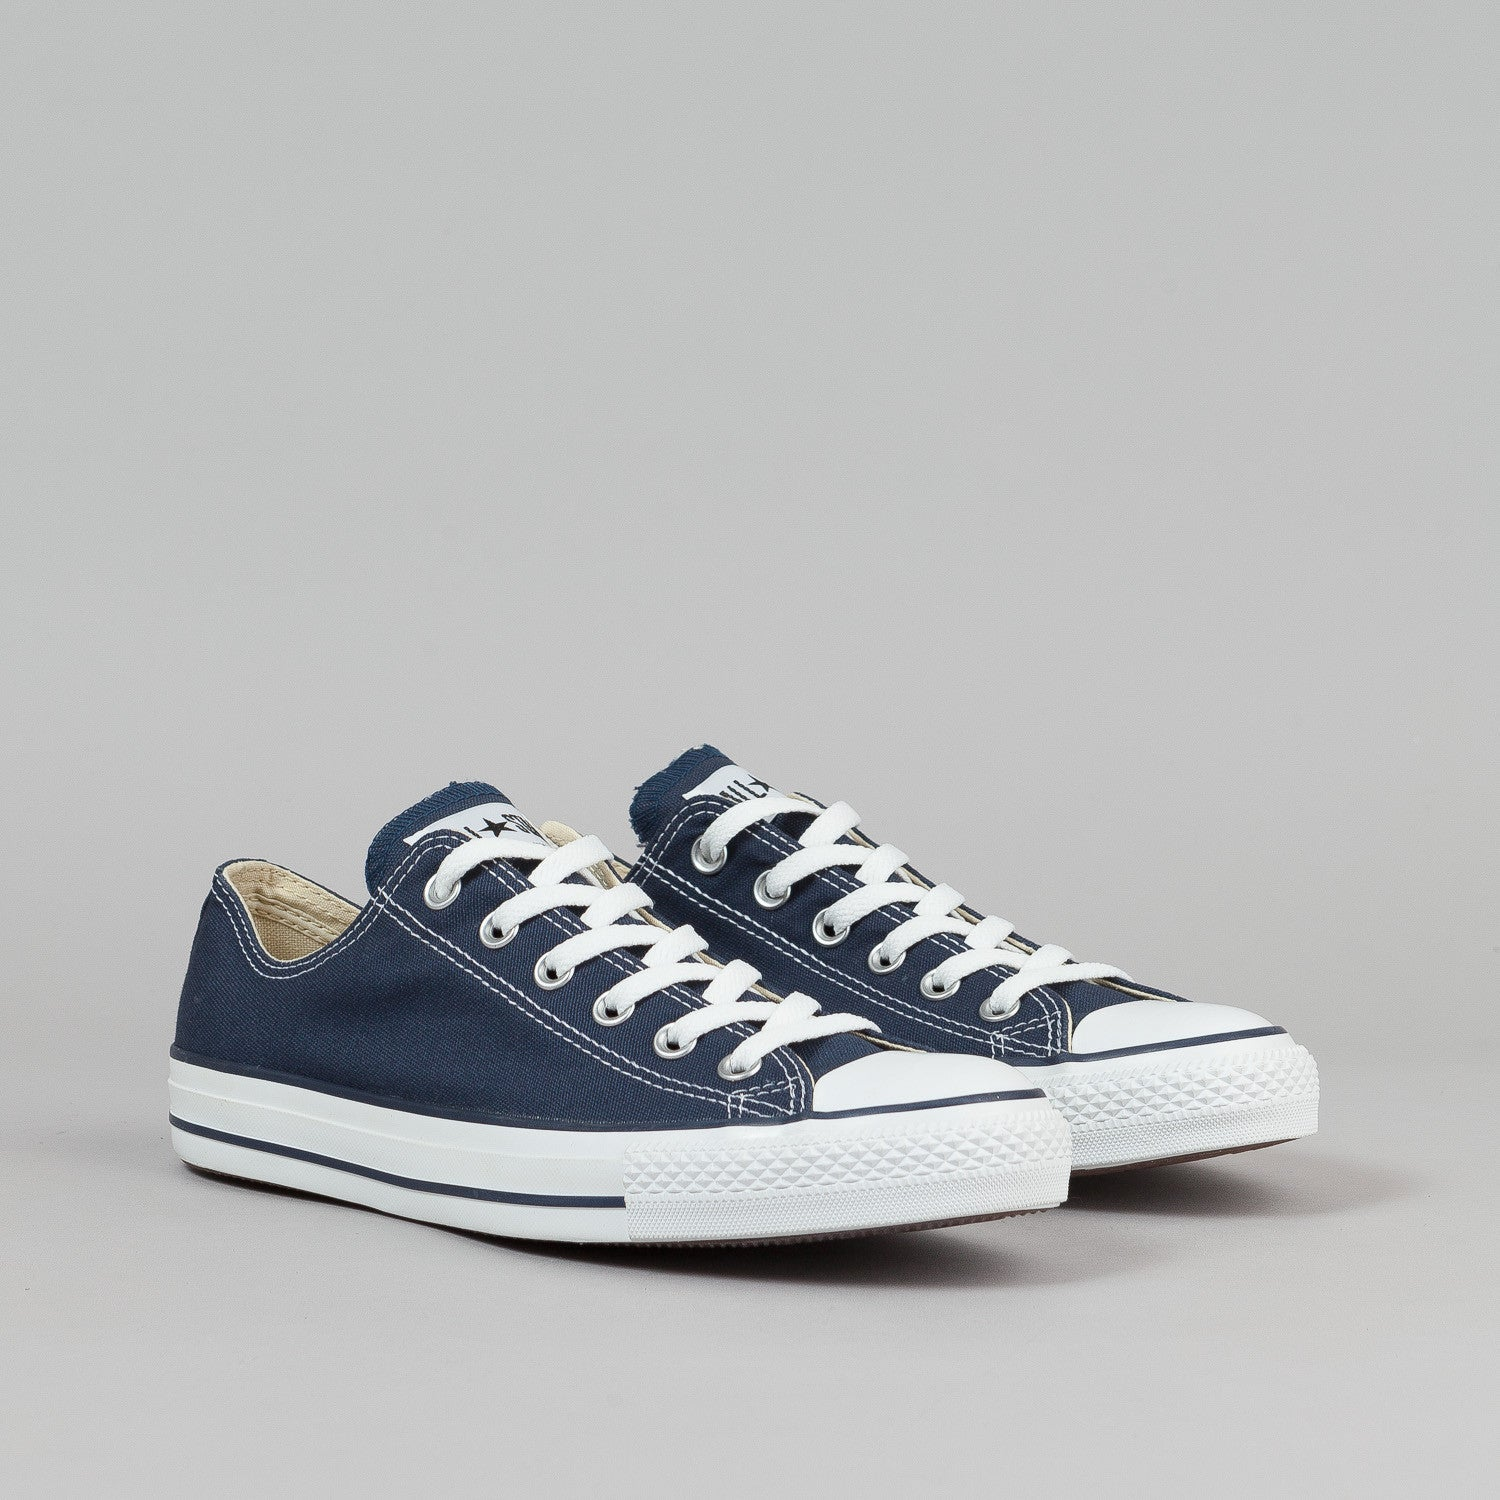 Converse All Star OX Shoes - Navy